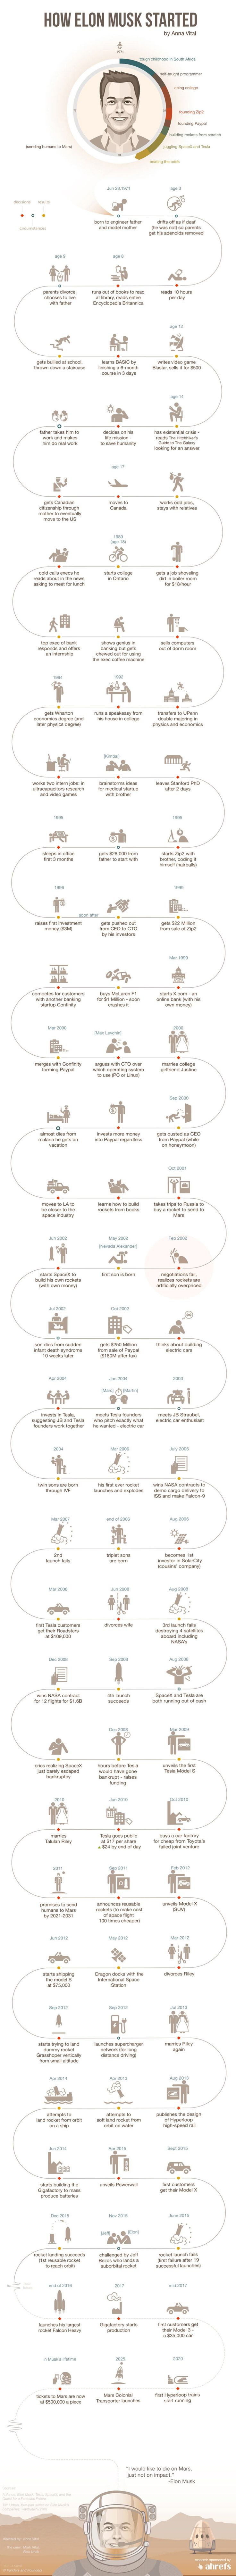 Elon Musk Biography Timeline Infographic. Topic: ceo, business, space, entrepreneur